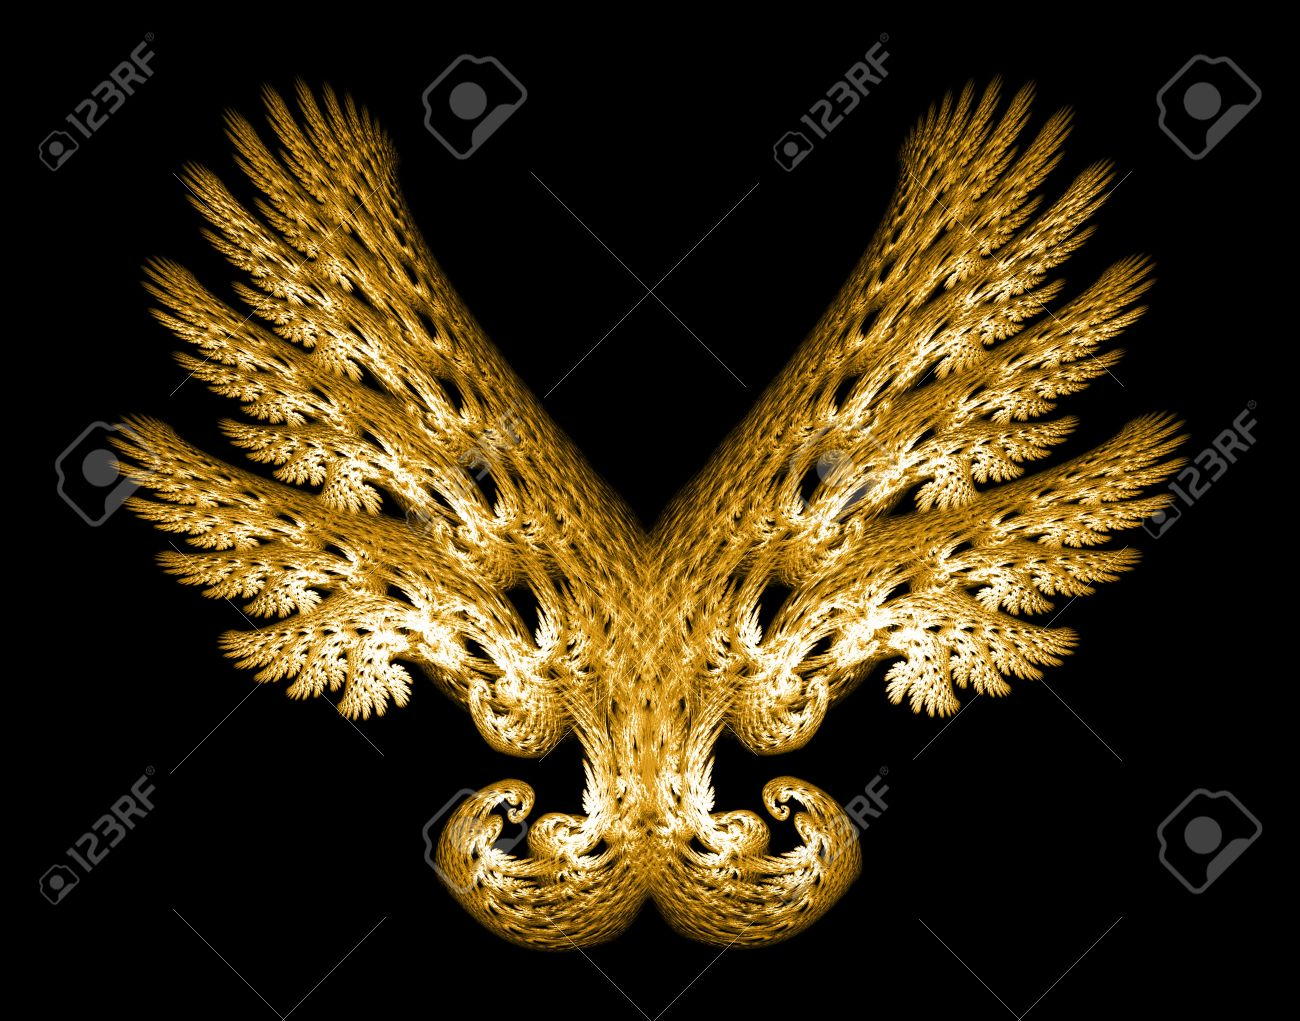 Golden Angel wings fractal emblem over black background. Stock Photo - 6031042